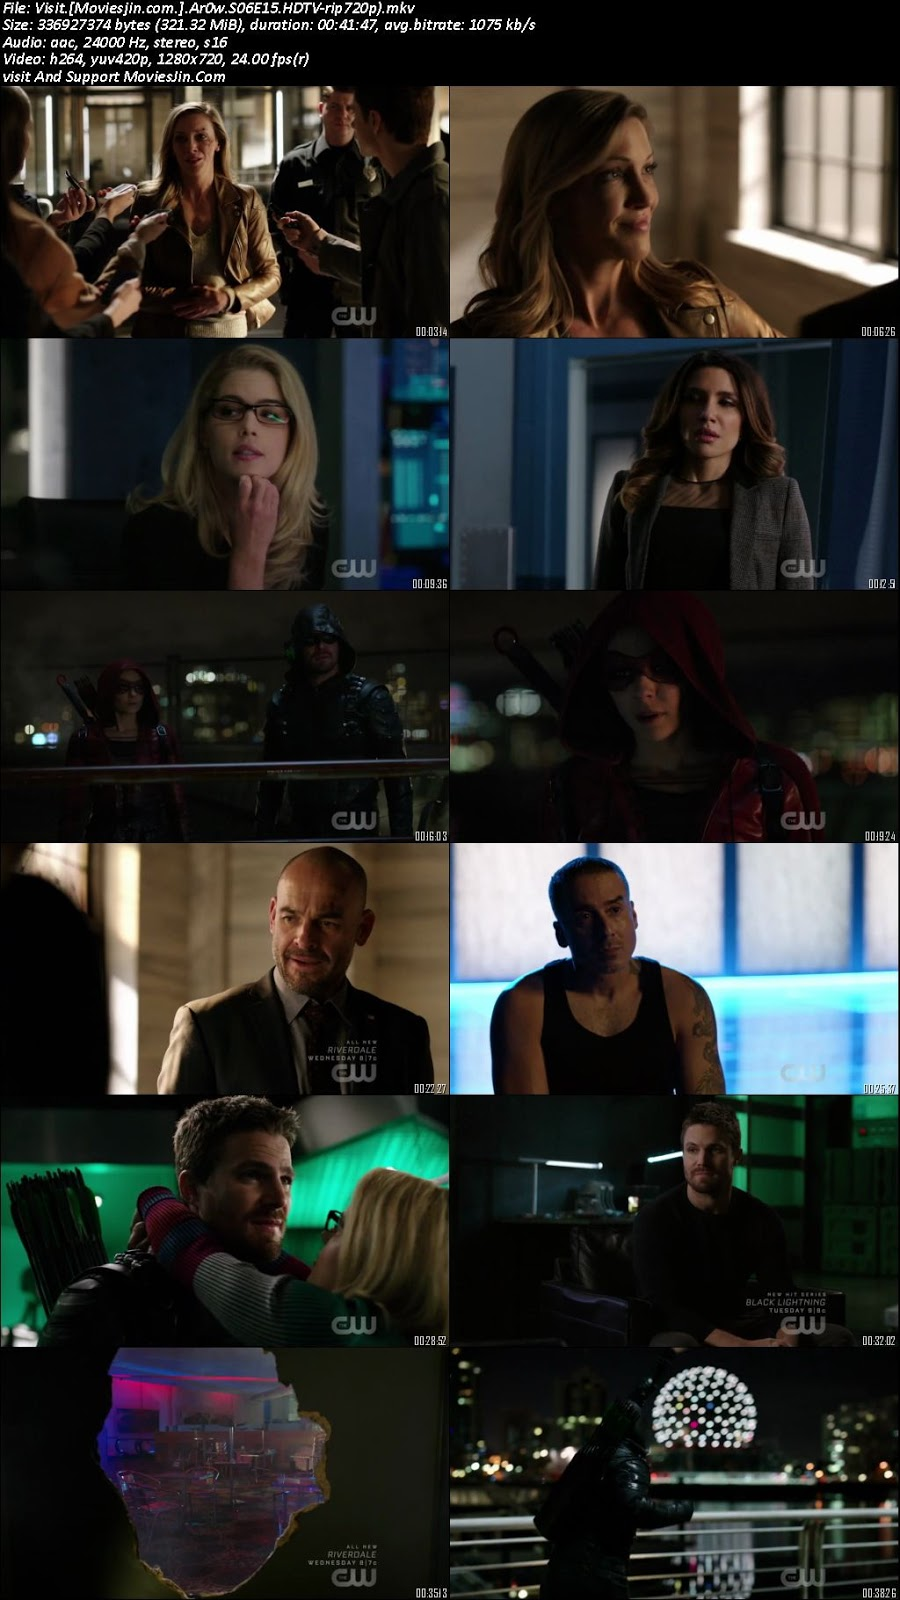 Arrow S06E15 330MB HD 720p TV-Rip WEBDL